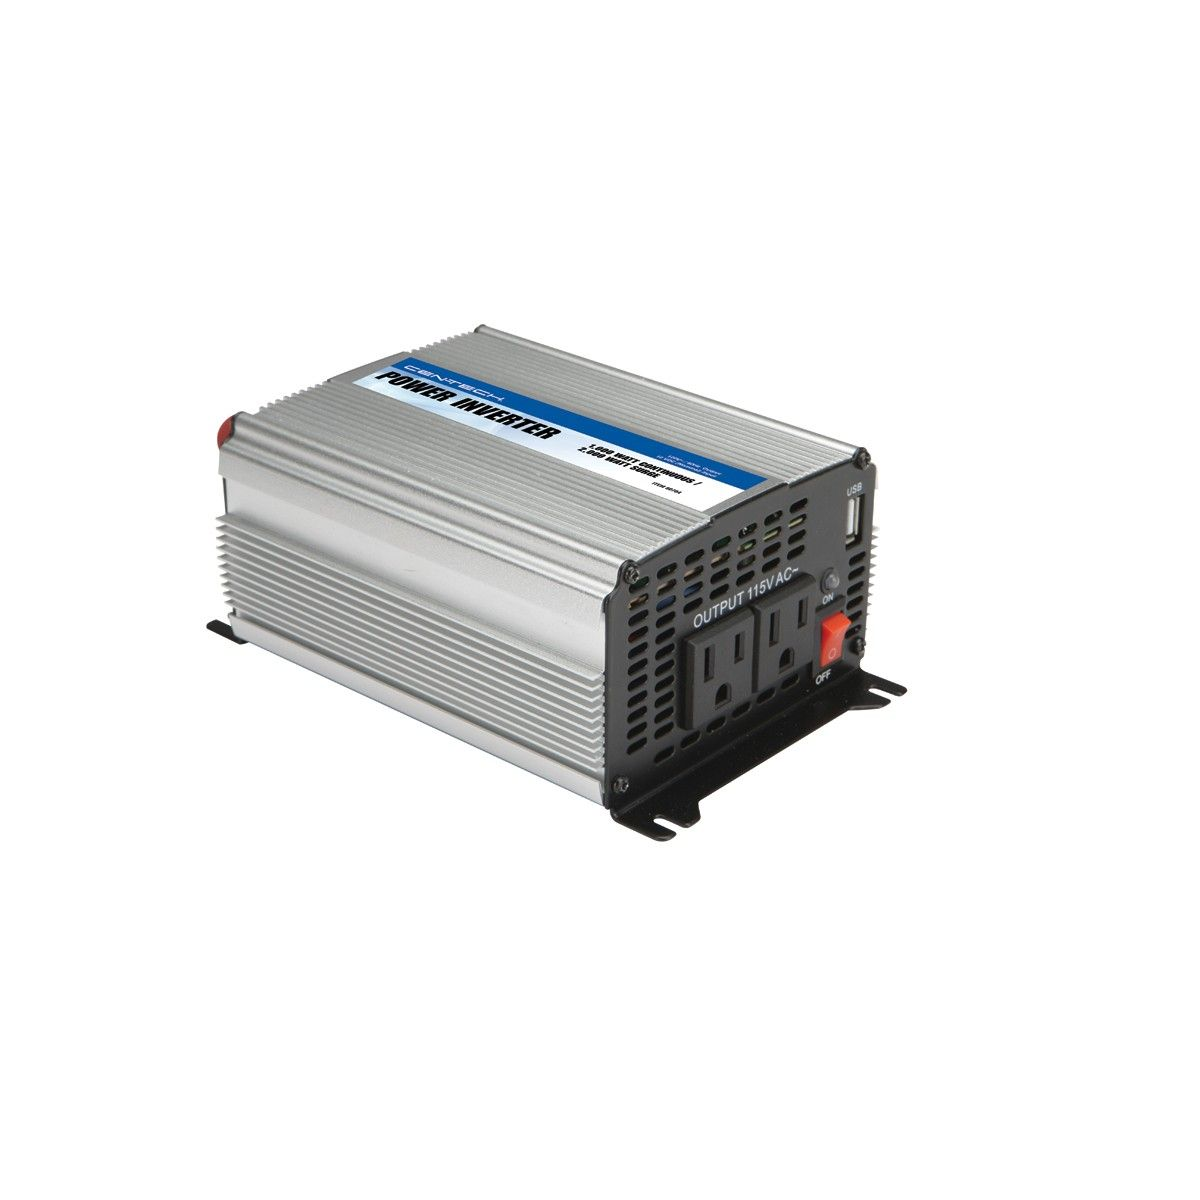 watt continuous watt peak power inverter 1000 watt continuous 2000 watt peak power inverter